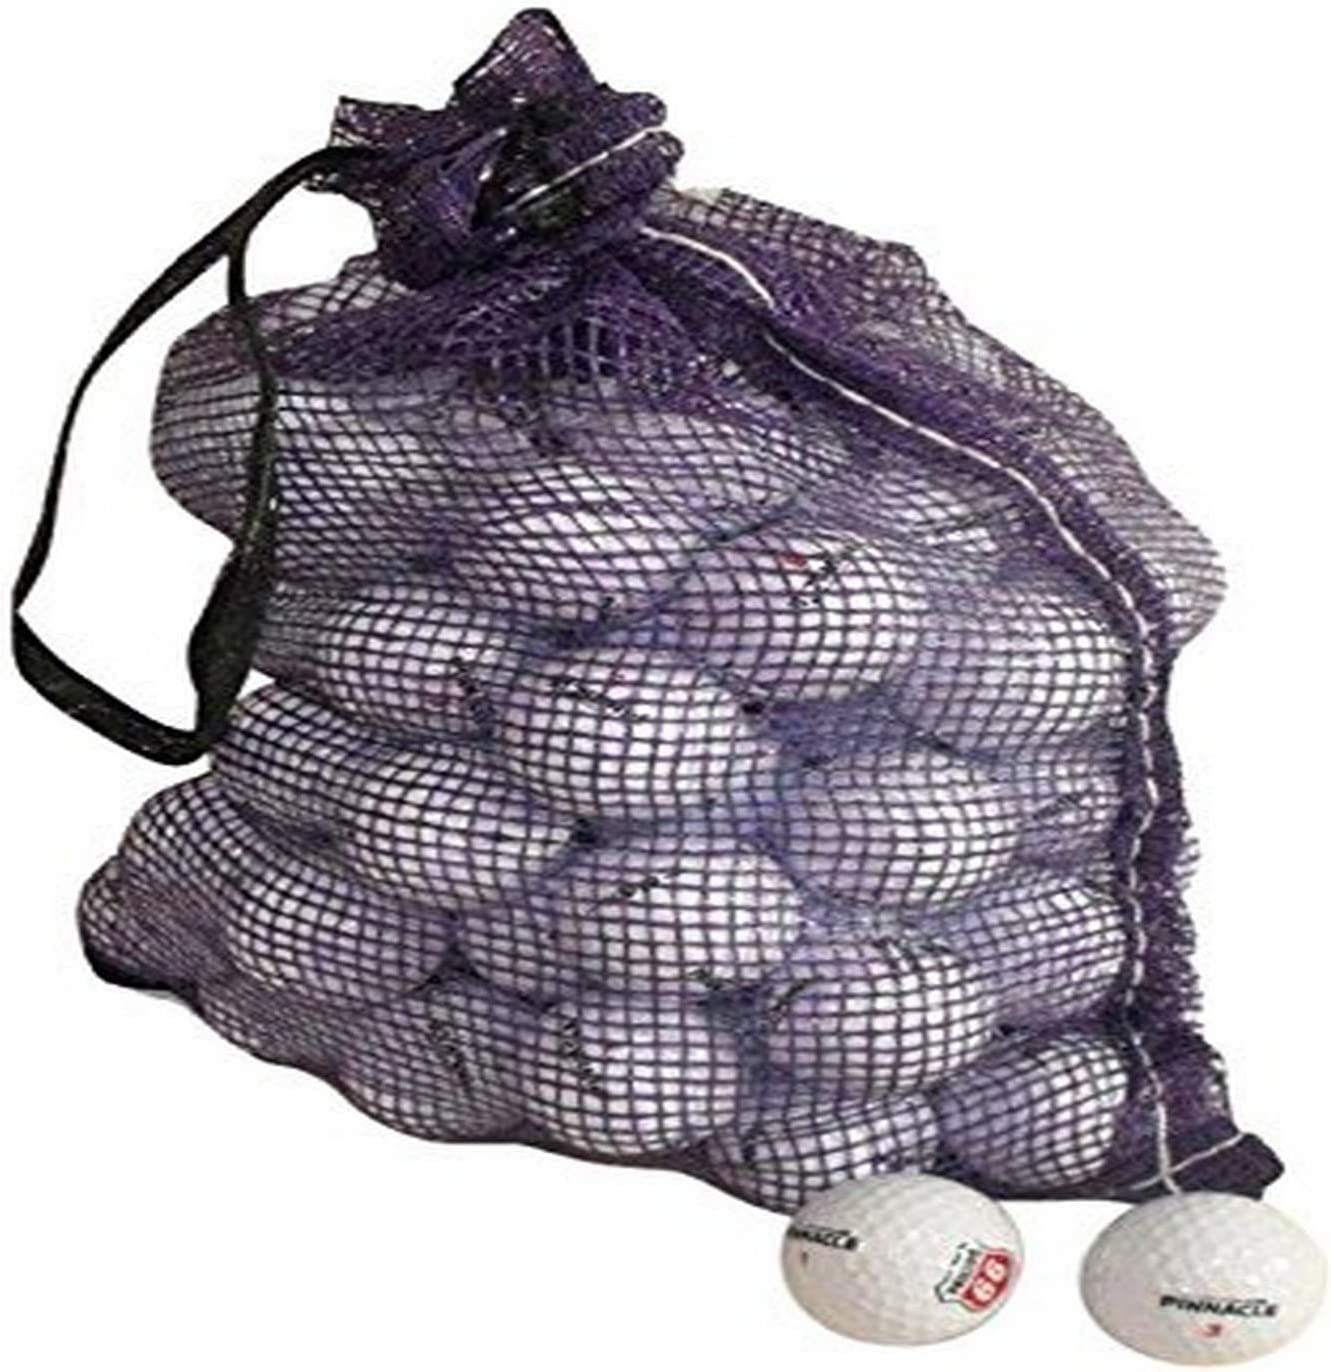 Pinnacle Recycled Grade A Golf Balls Cleaned Golf Balls Mint Condition 72 Balls Assorted Models in Onion Mesh Bag